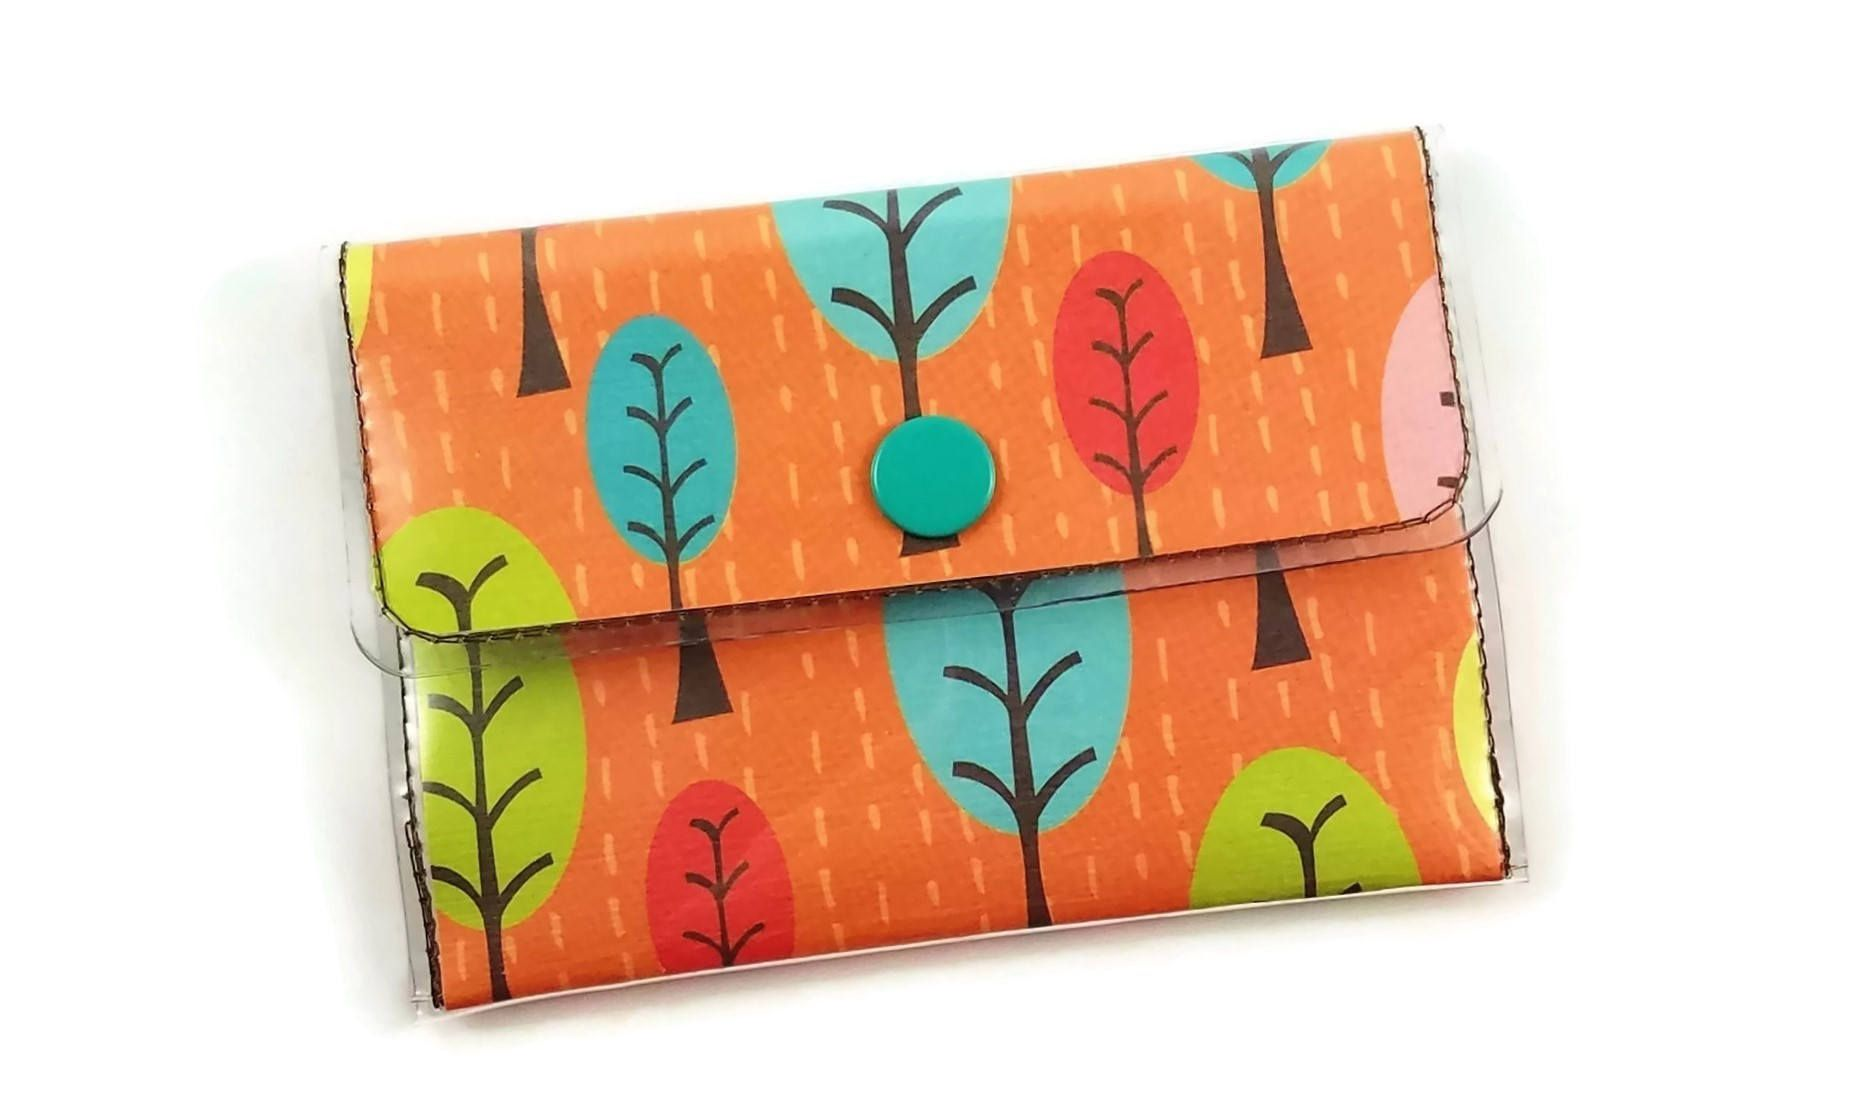 Vinyl wallet forest handmade wallet autumn trees vinyl business vinyl wallet forest handmade wallet autumn trees vinyl business card holder cute wallet colourmoves